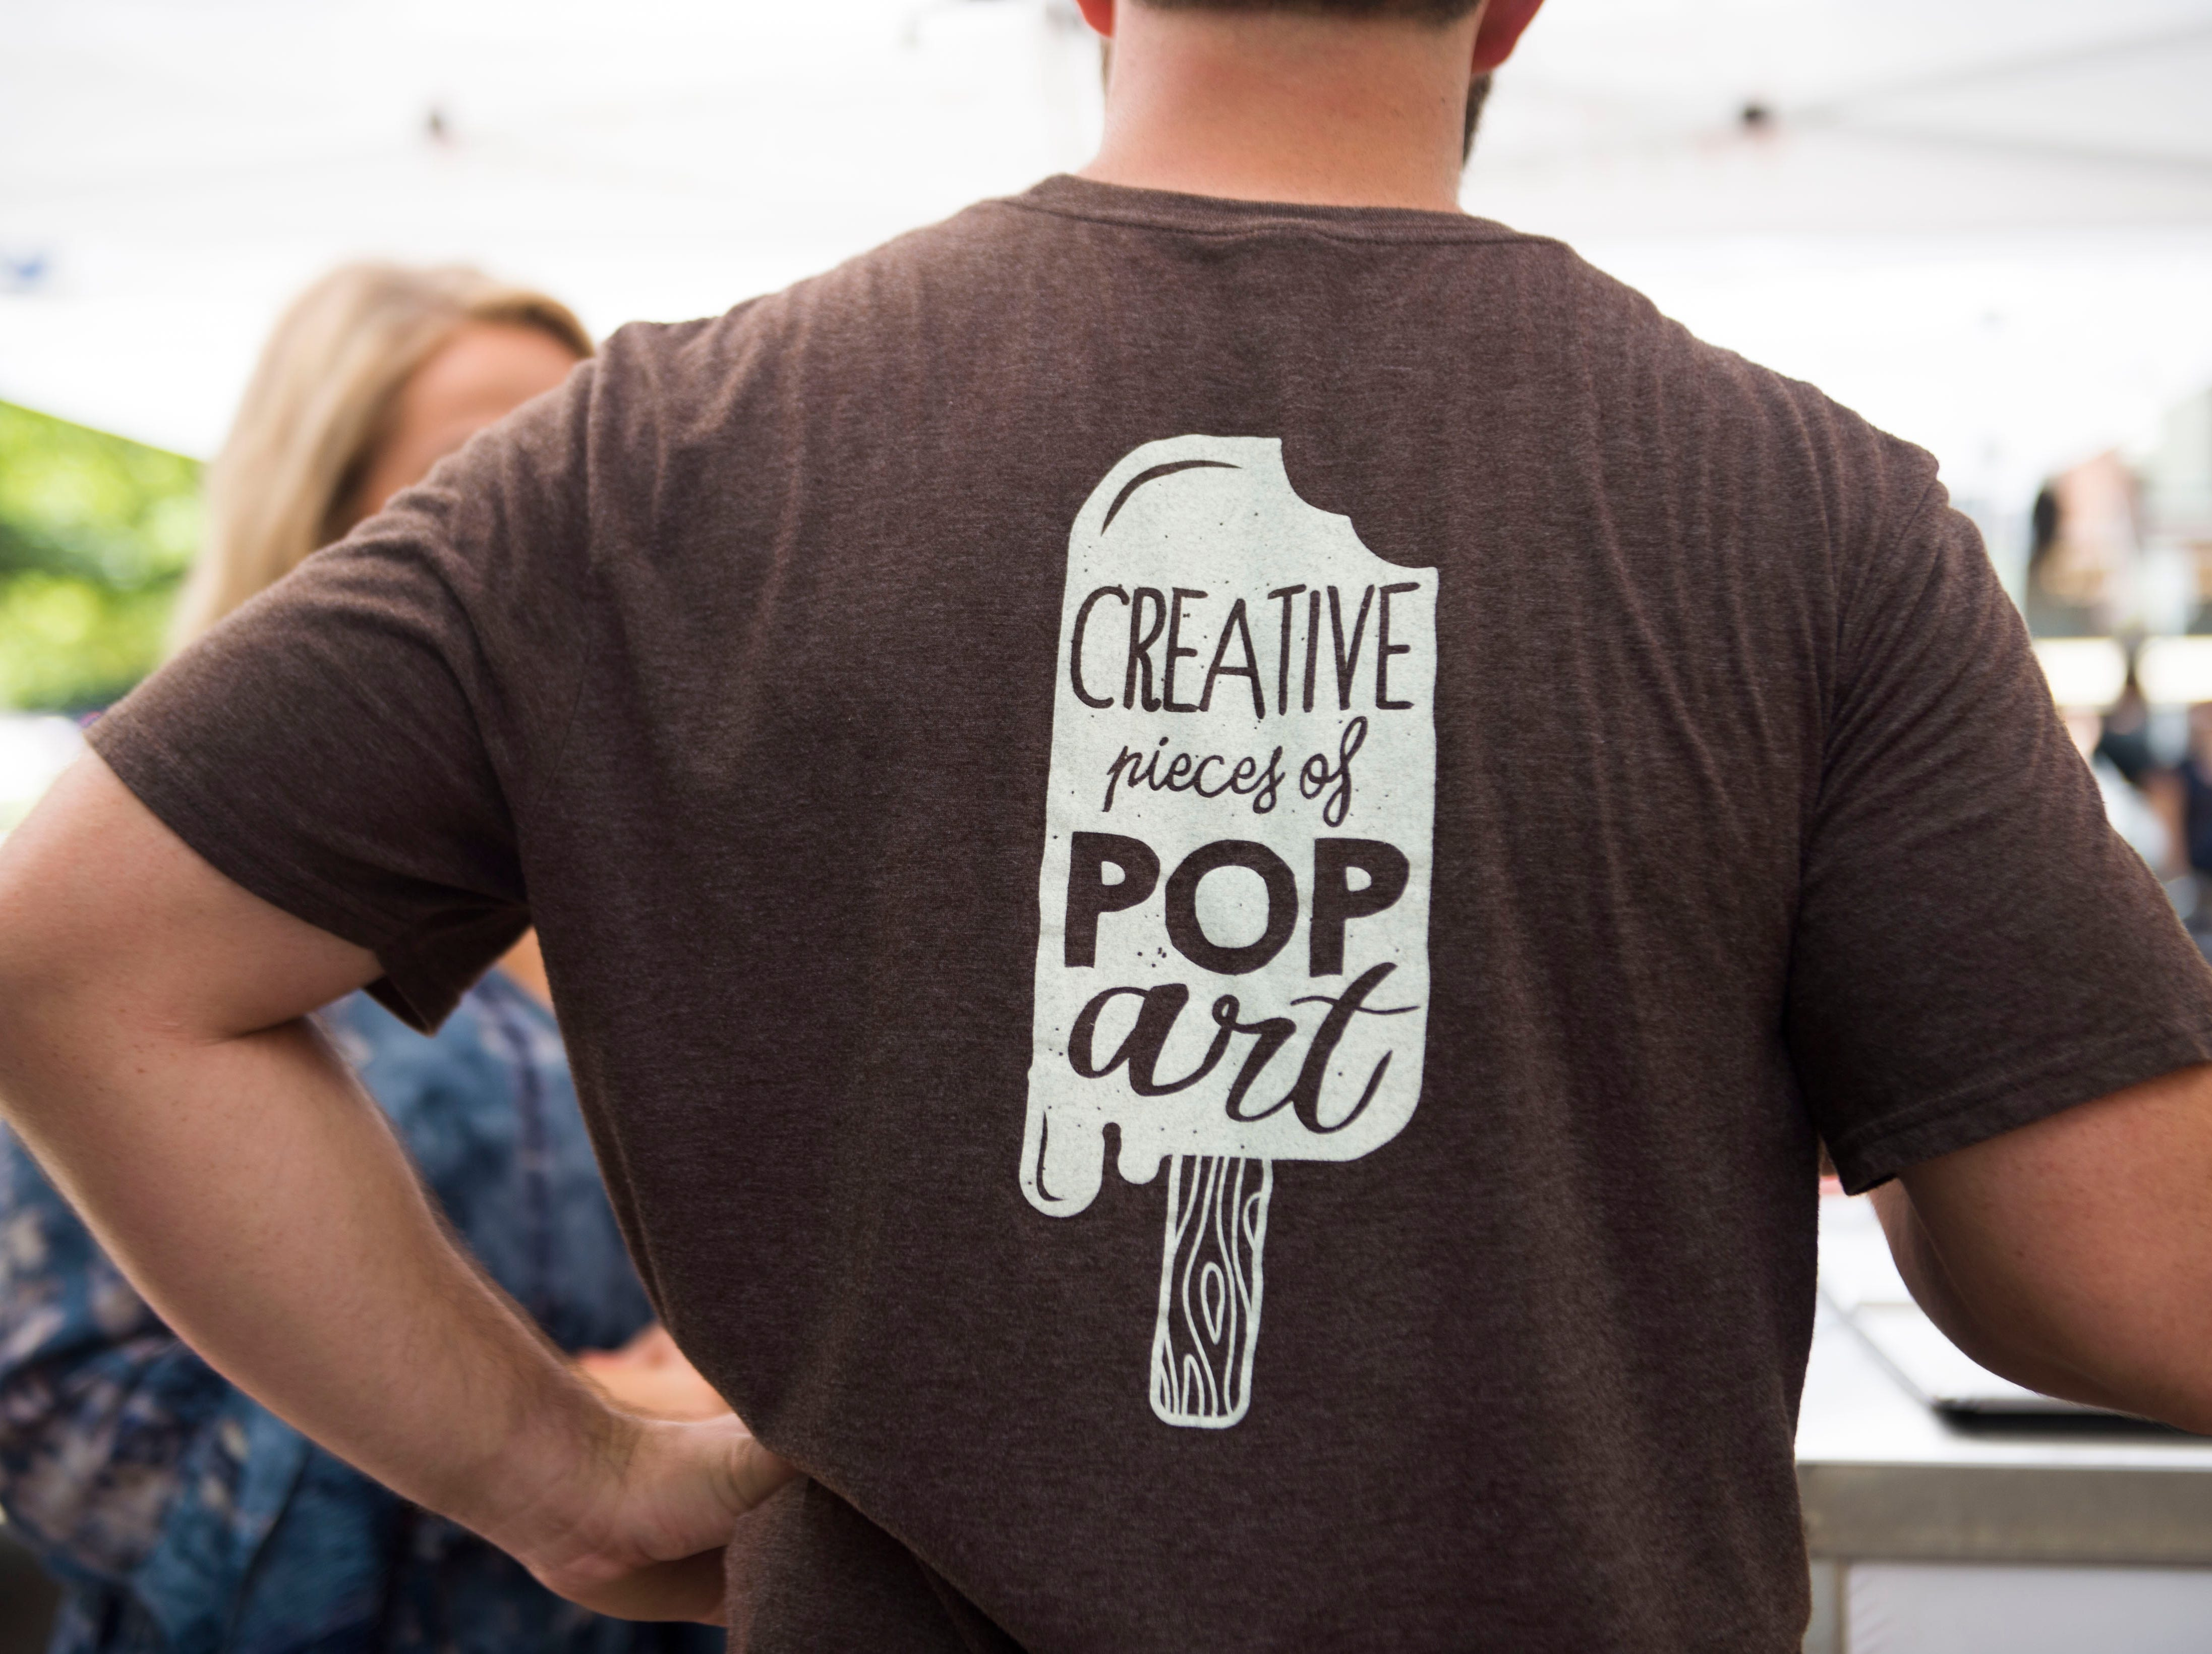 Jon Killebrew, co-owner of Artistic Pops, wears a shirt promoting them, at their stand at the farmers market in downtown Knoxville Saturday, Aug. 4, 2018. Artistic Pops are gluten free, nut free, and dairy free.